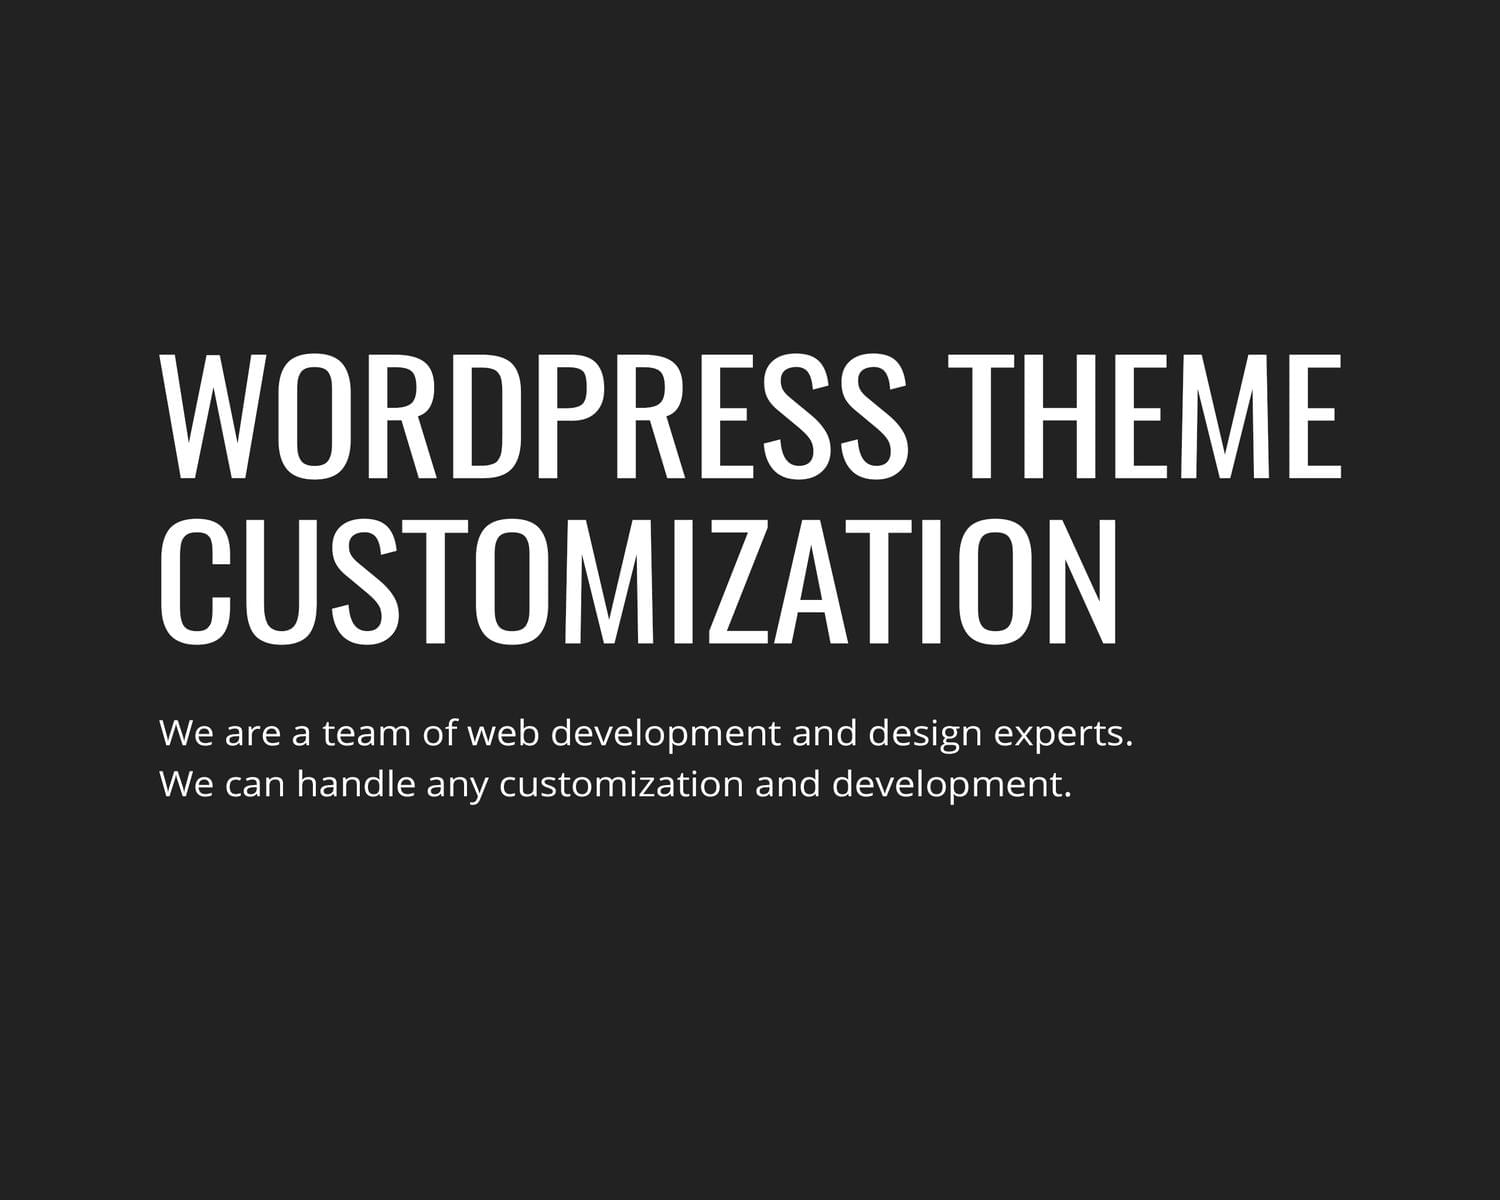 WordPress Theme Customization by gljivec - 114598